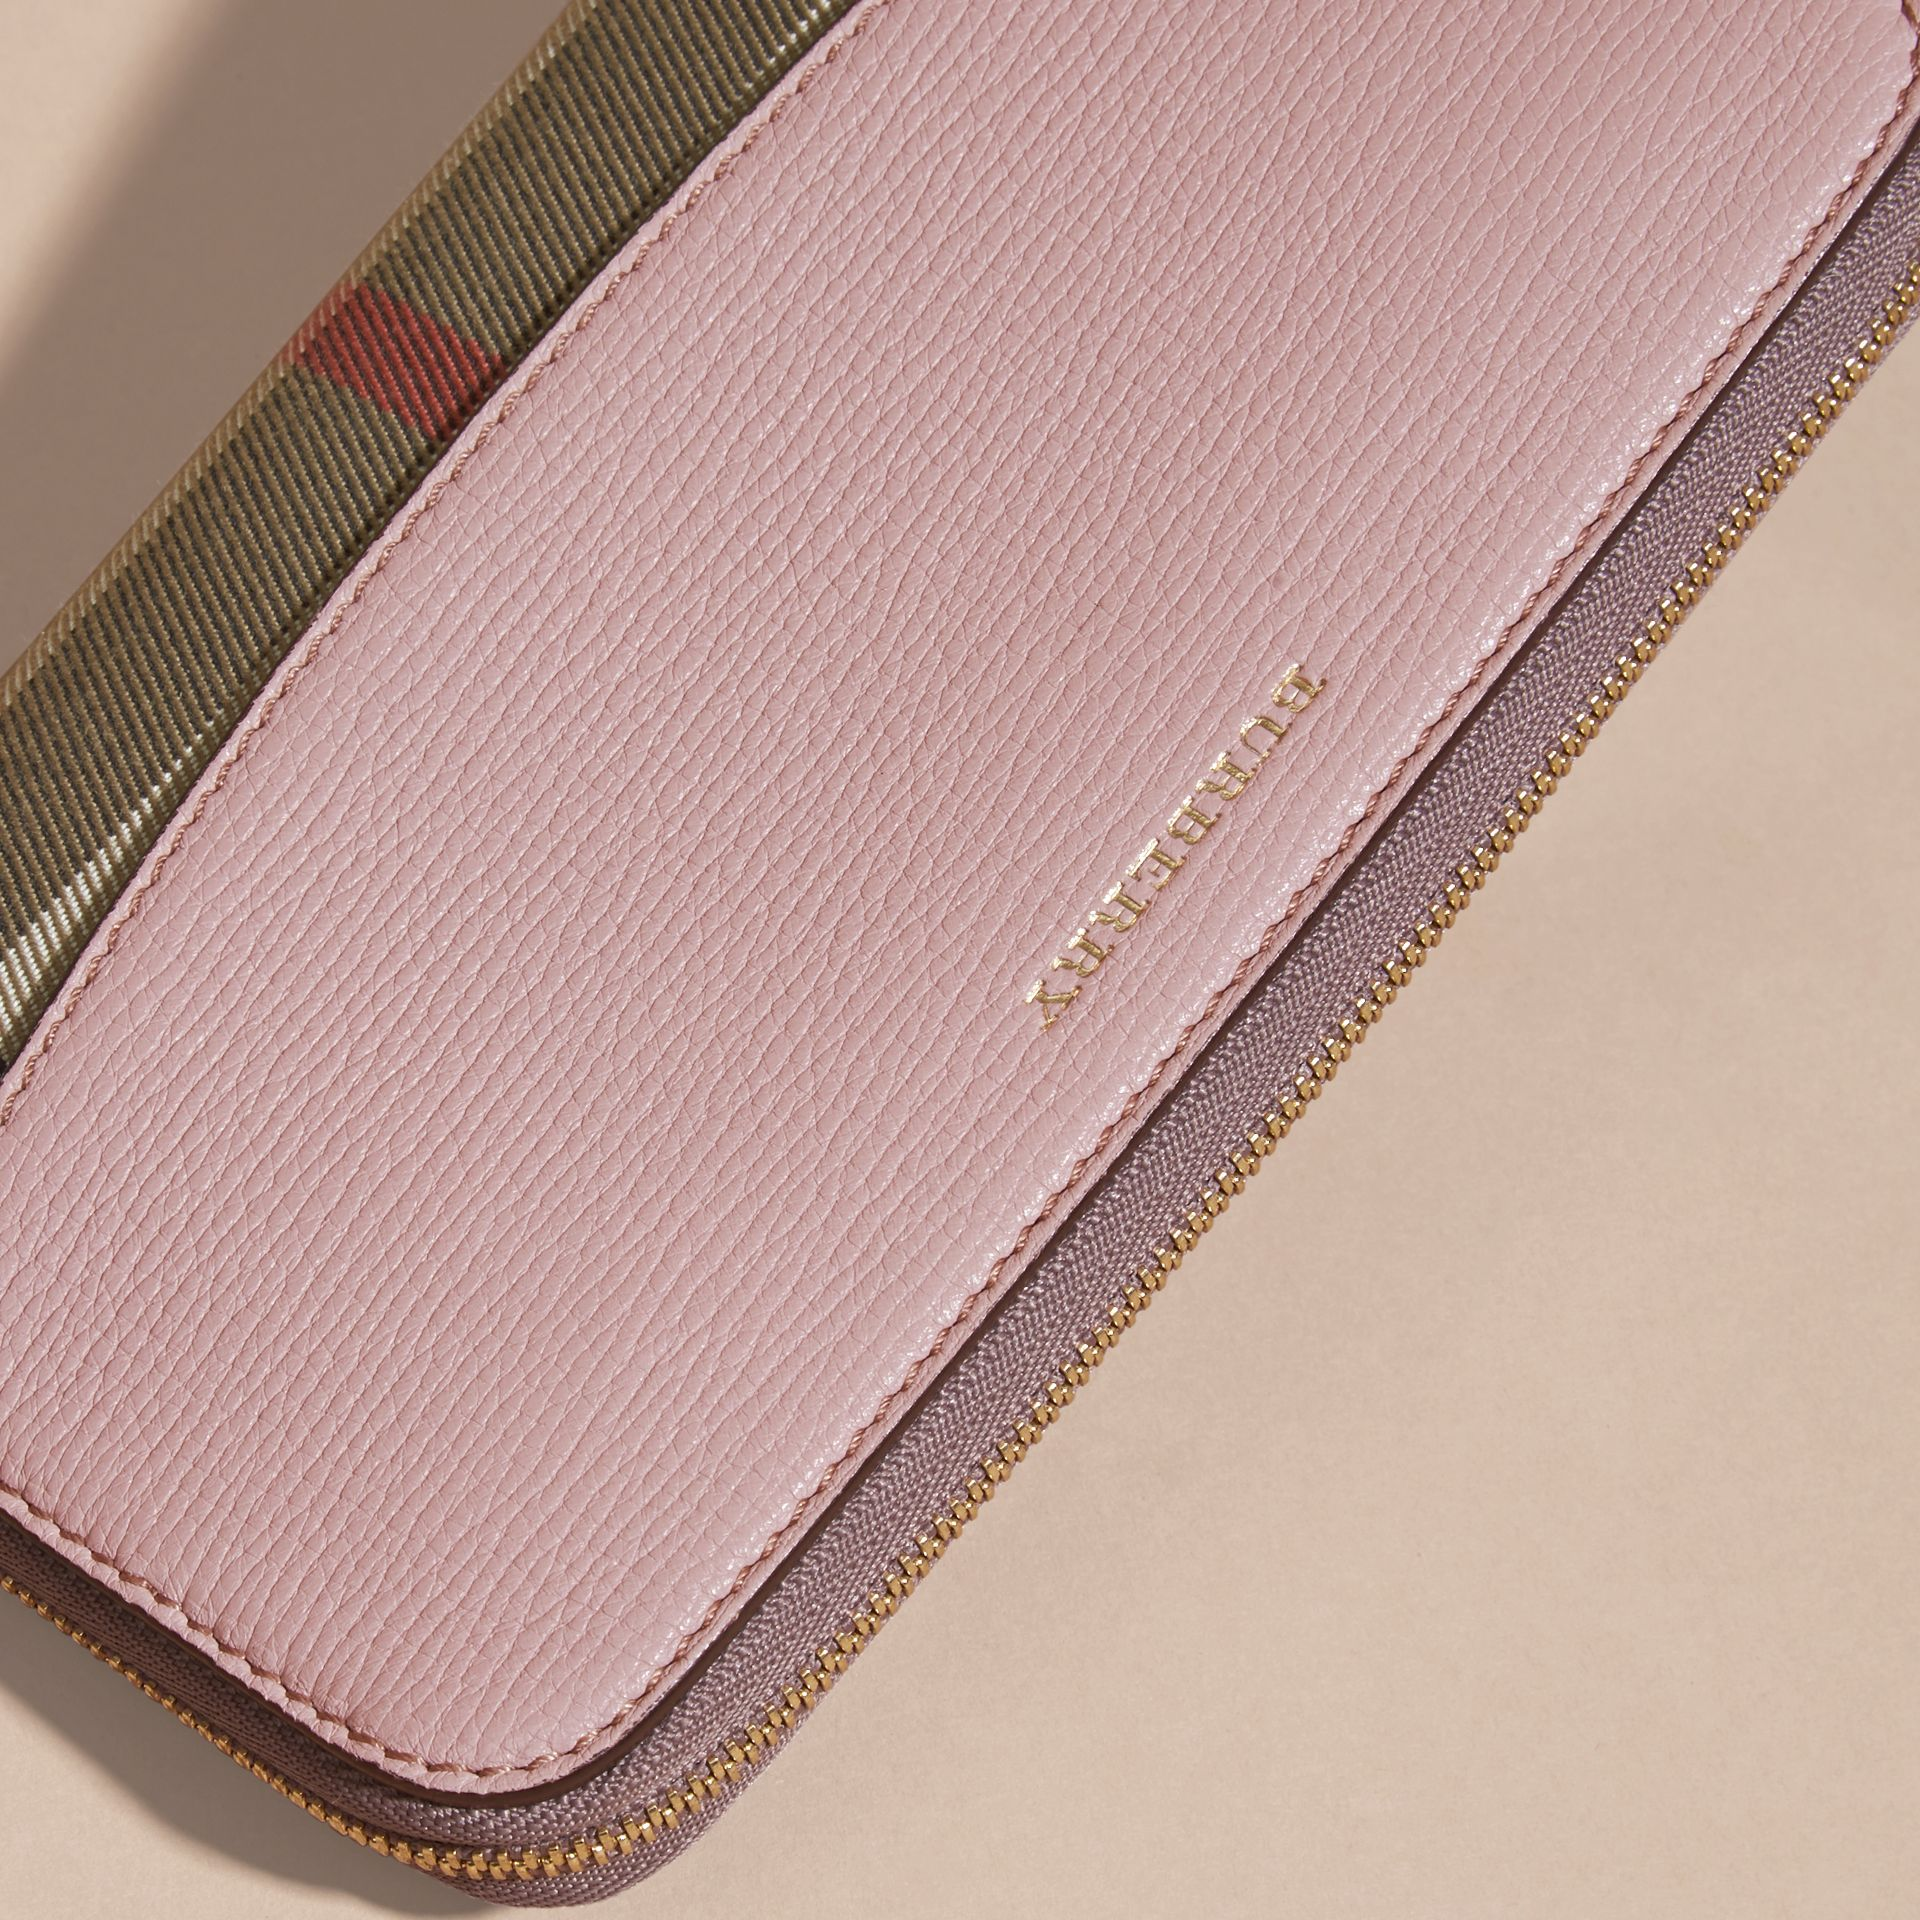 House Check and Leather Ziparound Wallet in Pale Orchid - Women | Burberry - gallery image 4